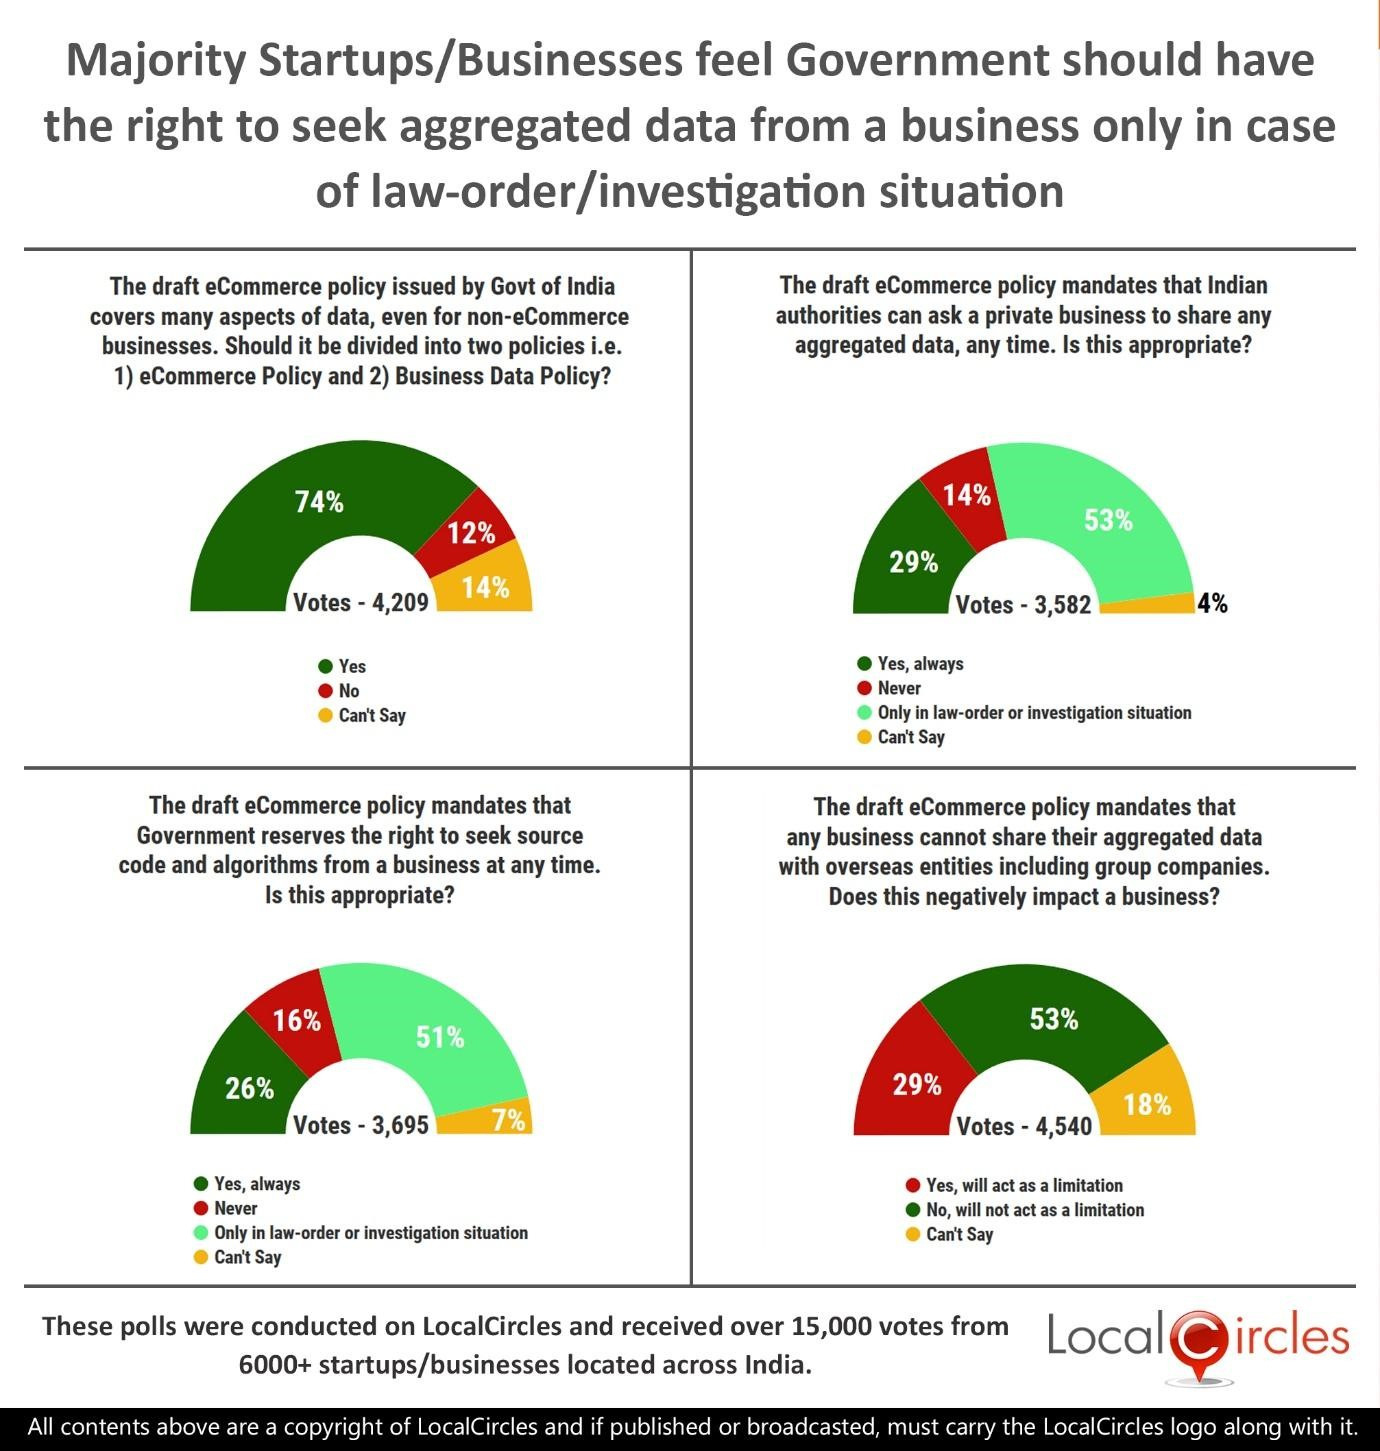 Majority Startups/Businesses feel Government should have the right to seek aggregated data from a business only in case of law-order/investigation situation